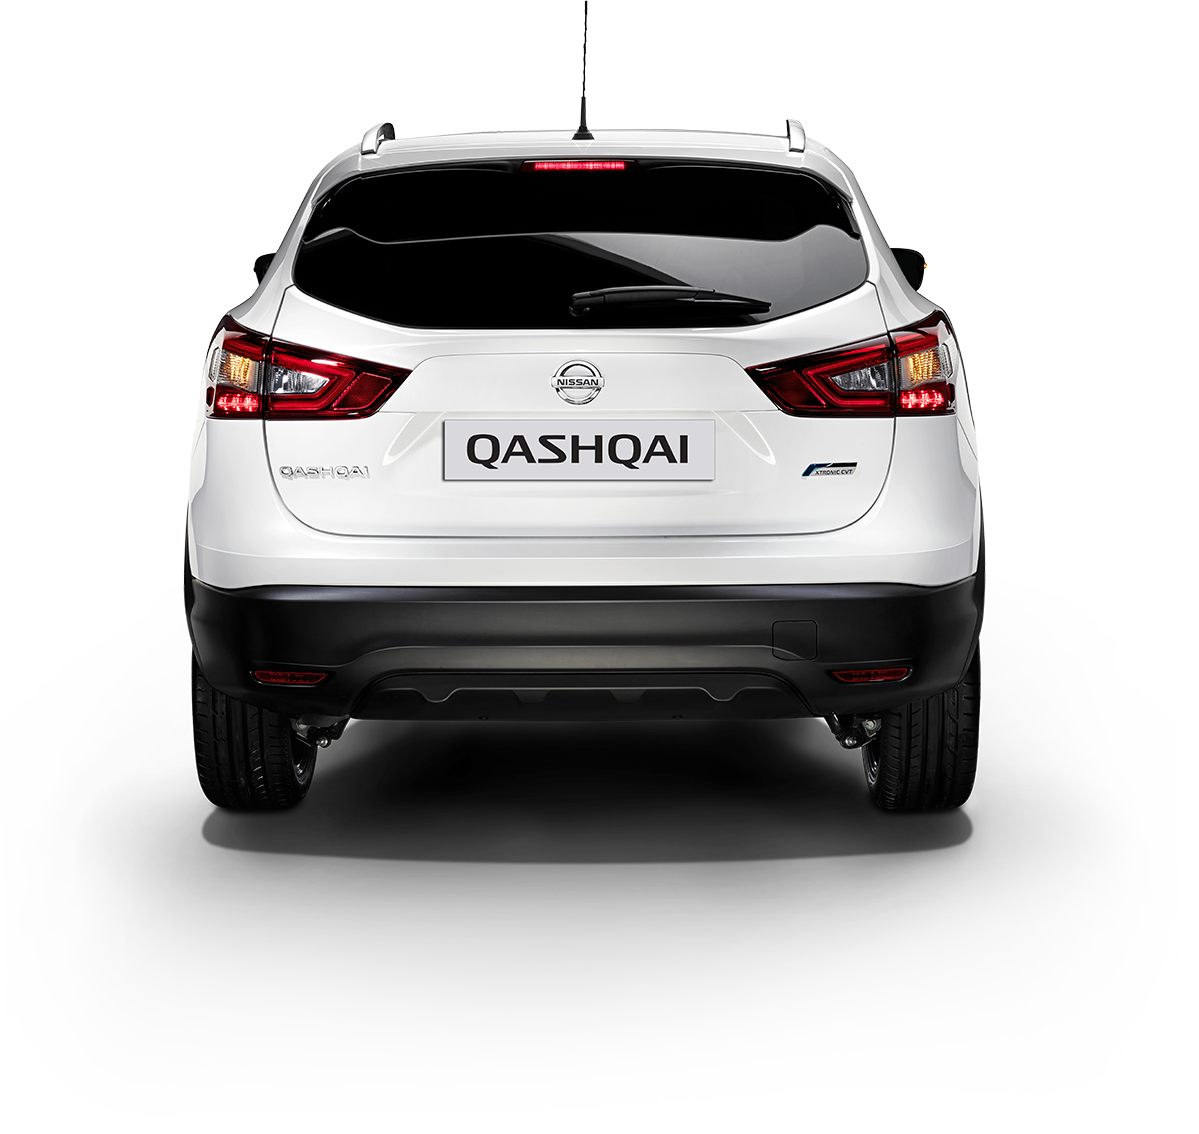 nissan qashqai 2015 specifications pdf 2017 2018 best cars reviews. Black Bedroom Furniture Sets. Home Design Ideas